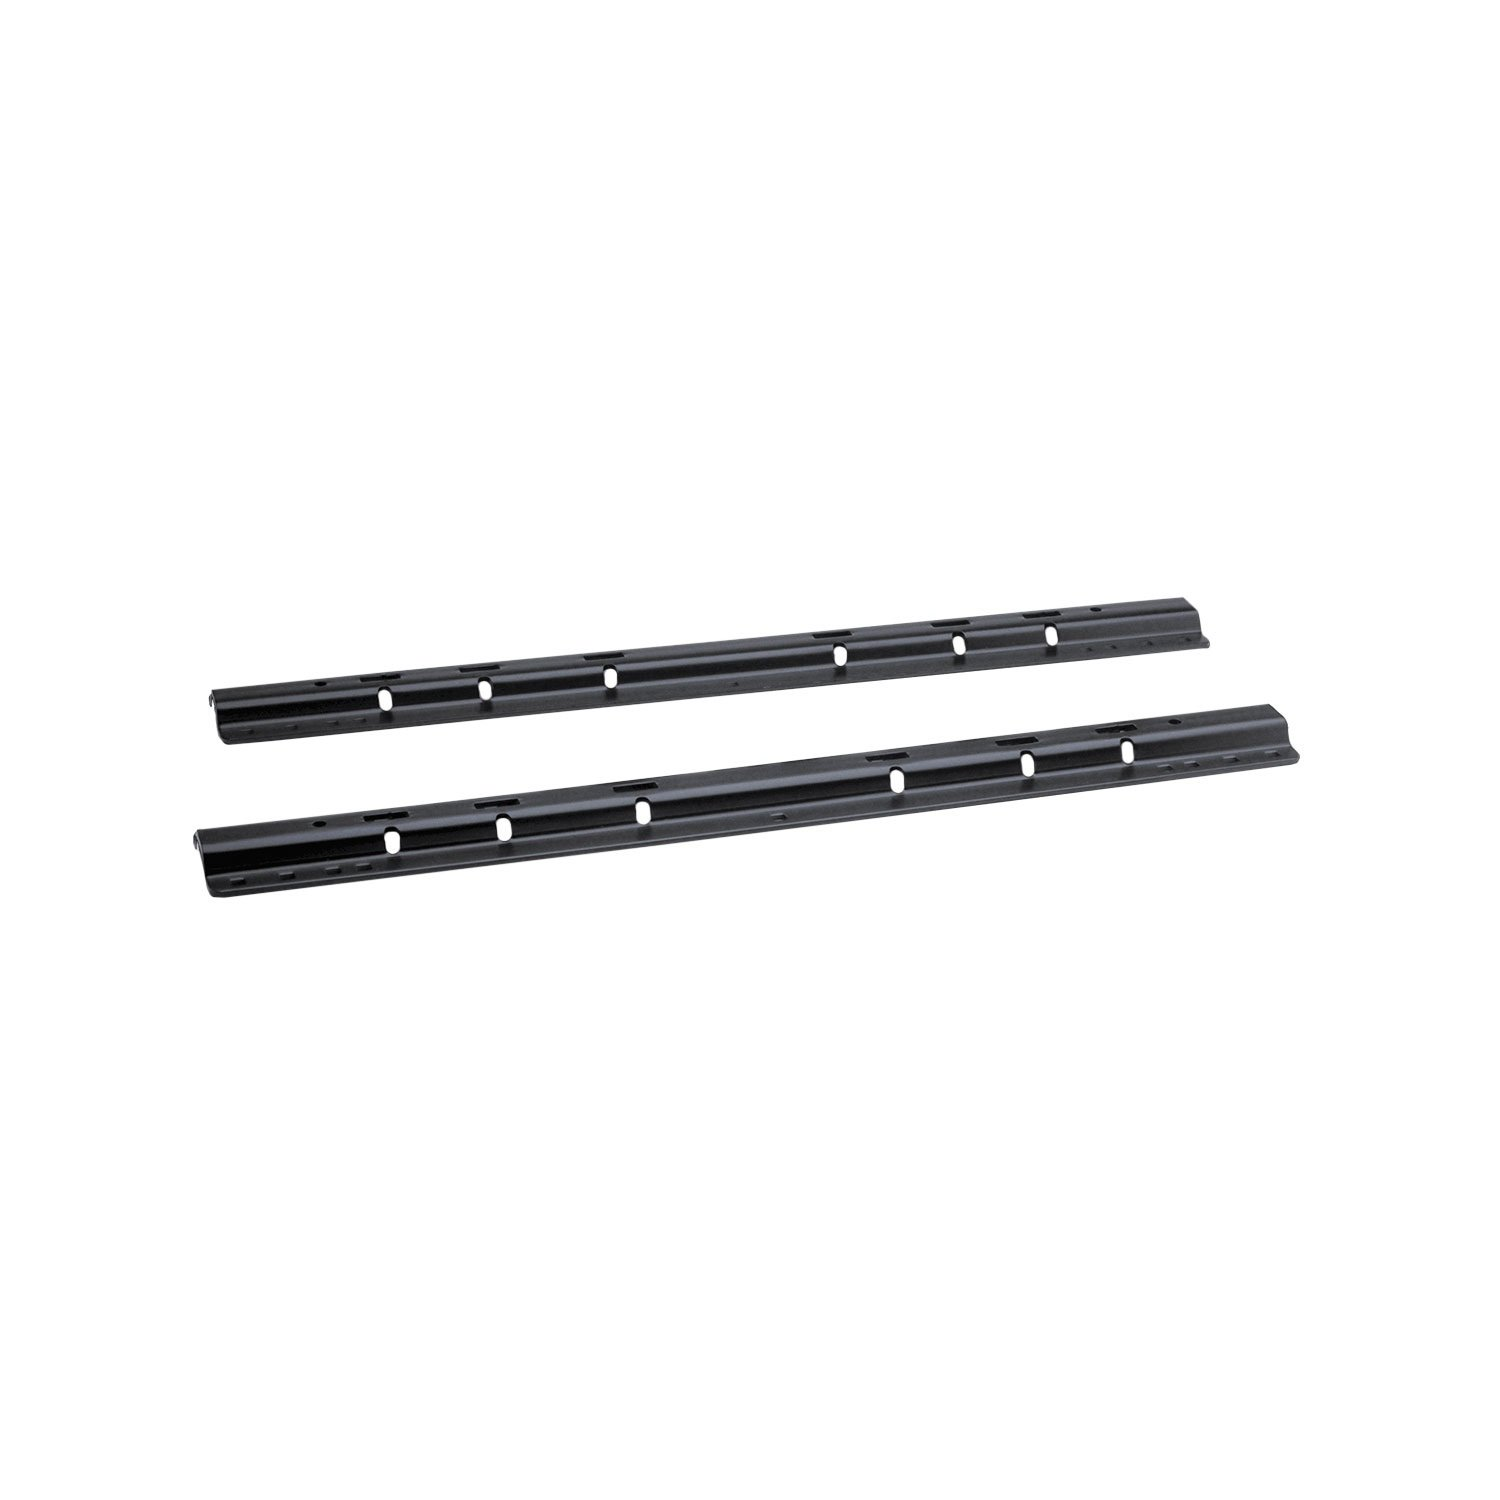 58058 Black Powder Coat 38 lbs. Fifth Wheel Mounting Rails with 10-Bolt Design by Pro Series